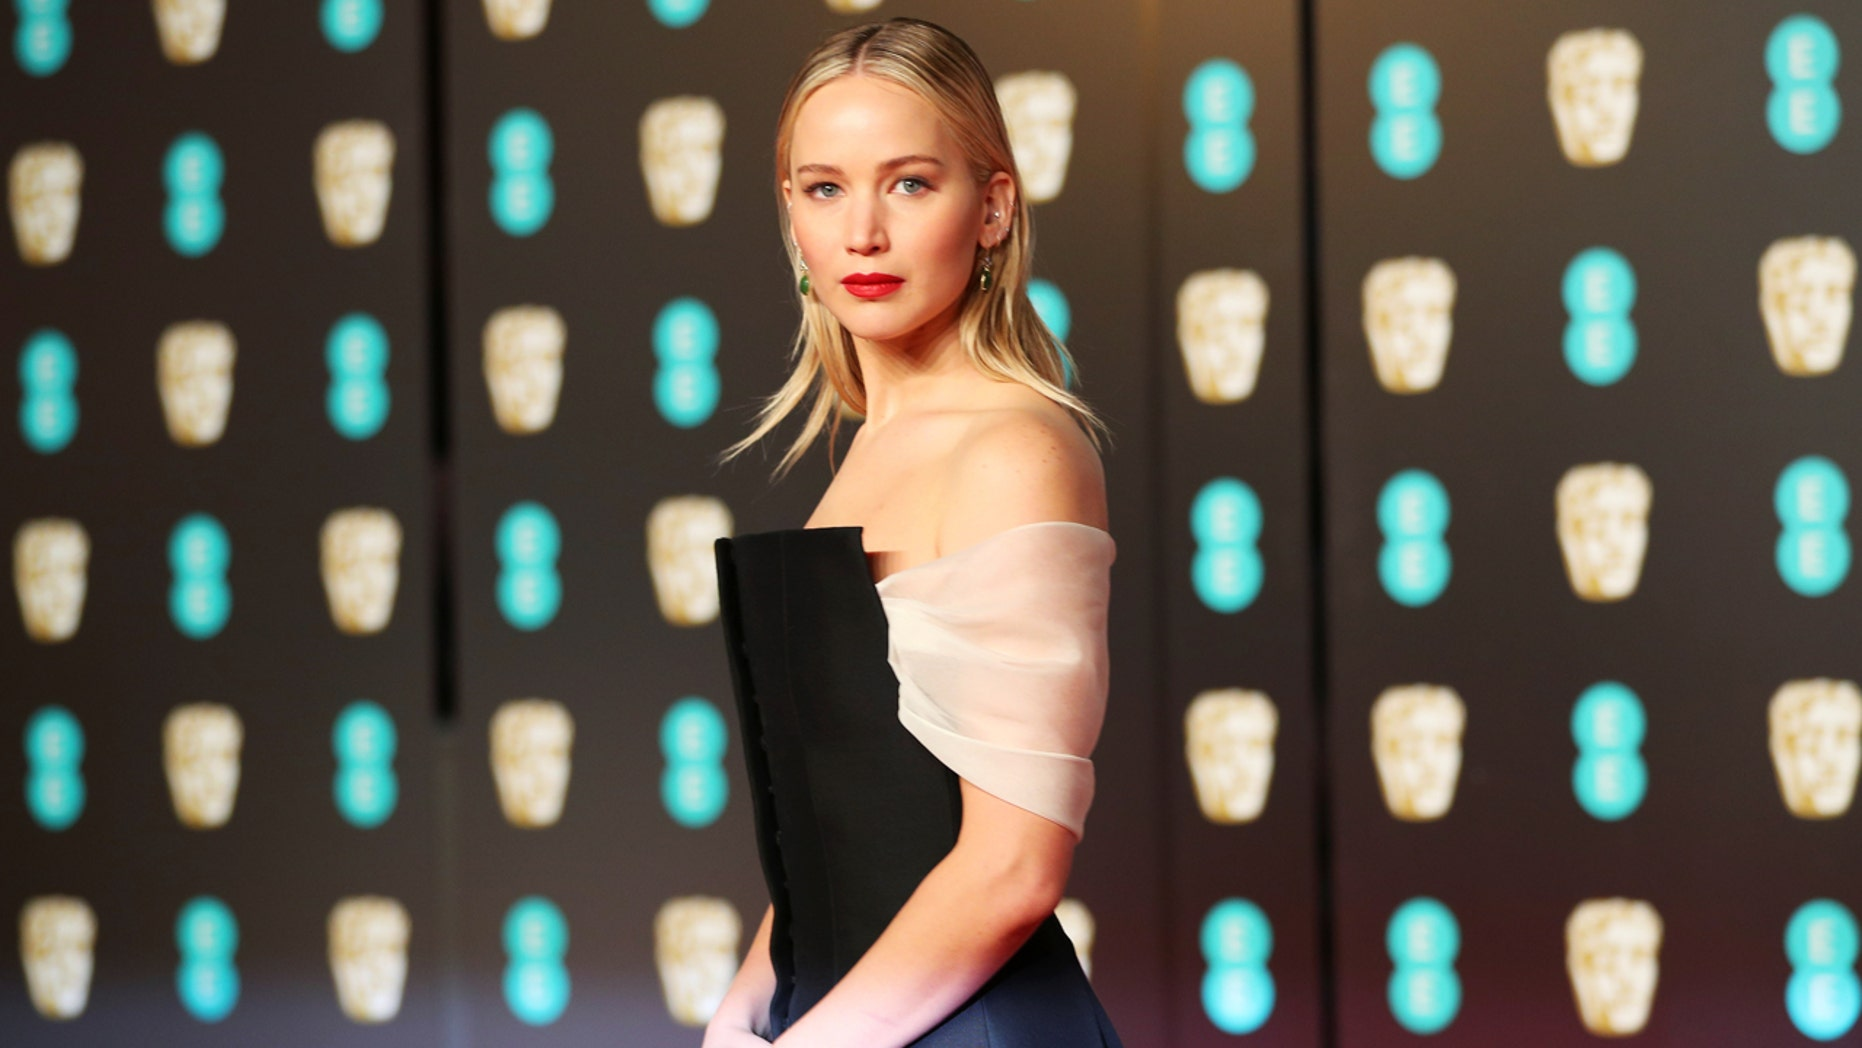 Jennifer Lawrence arrives at the British Academy of Film and Television Awards (BAFTA) at the Royal Albert Hall in London, Britain, February 18, 2018.